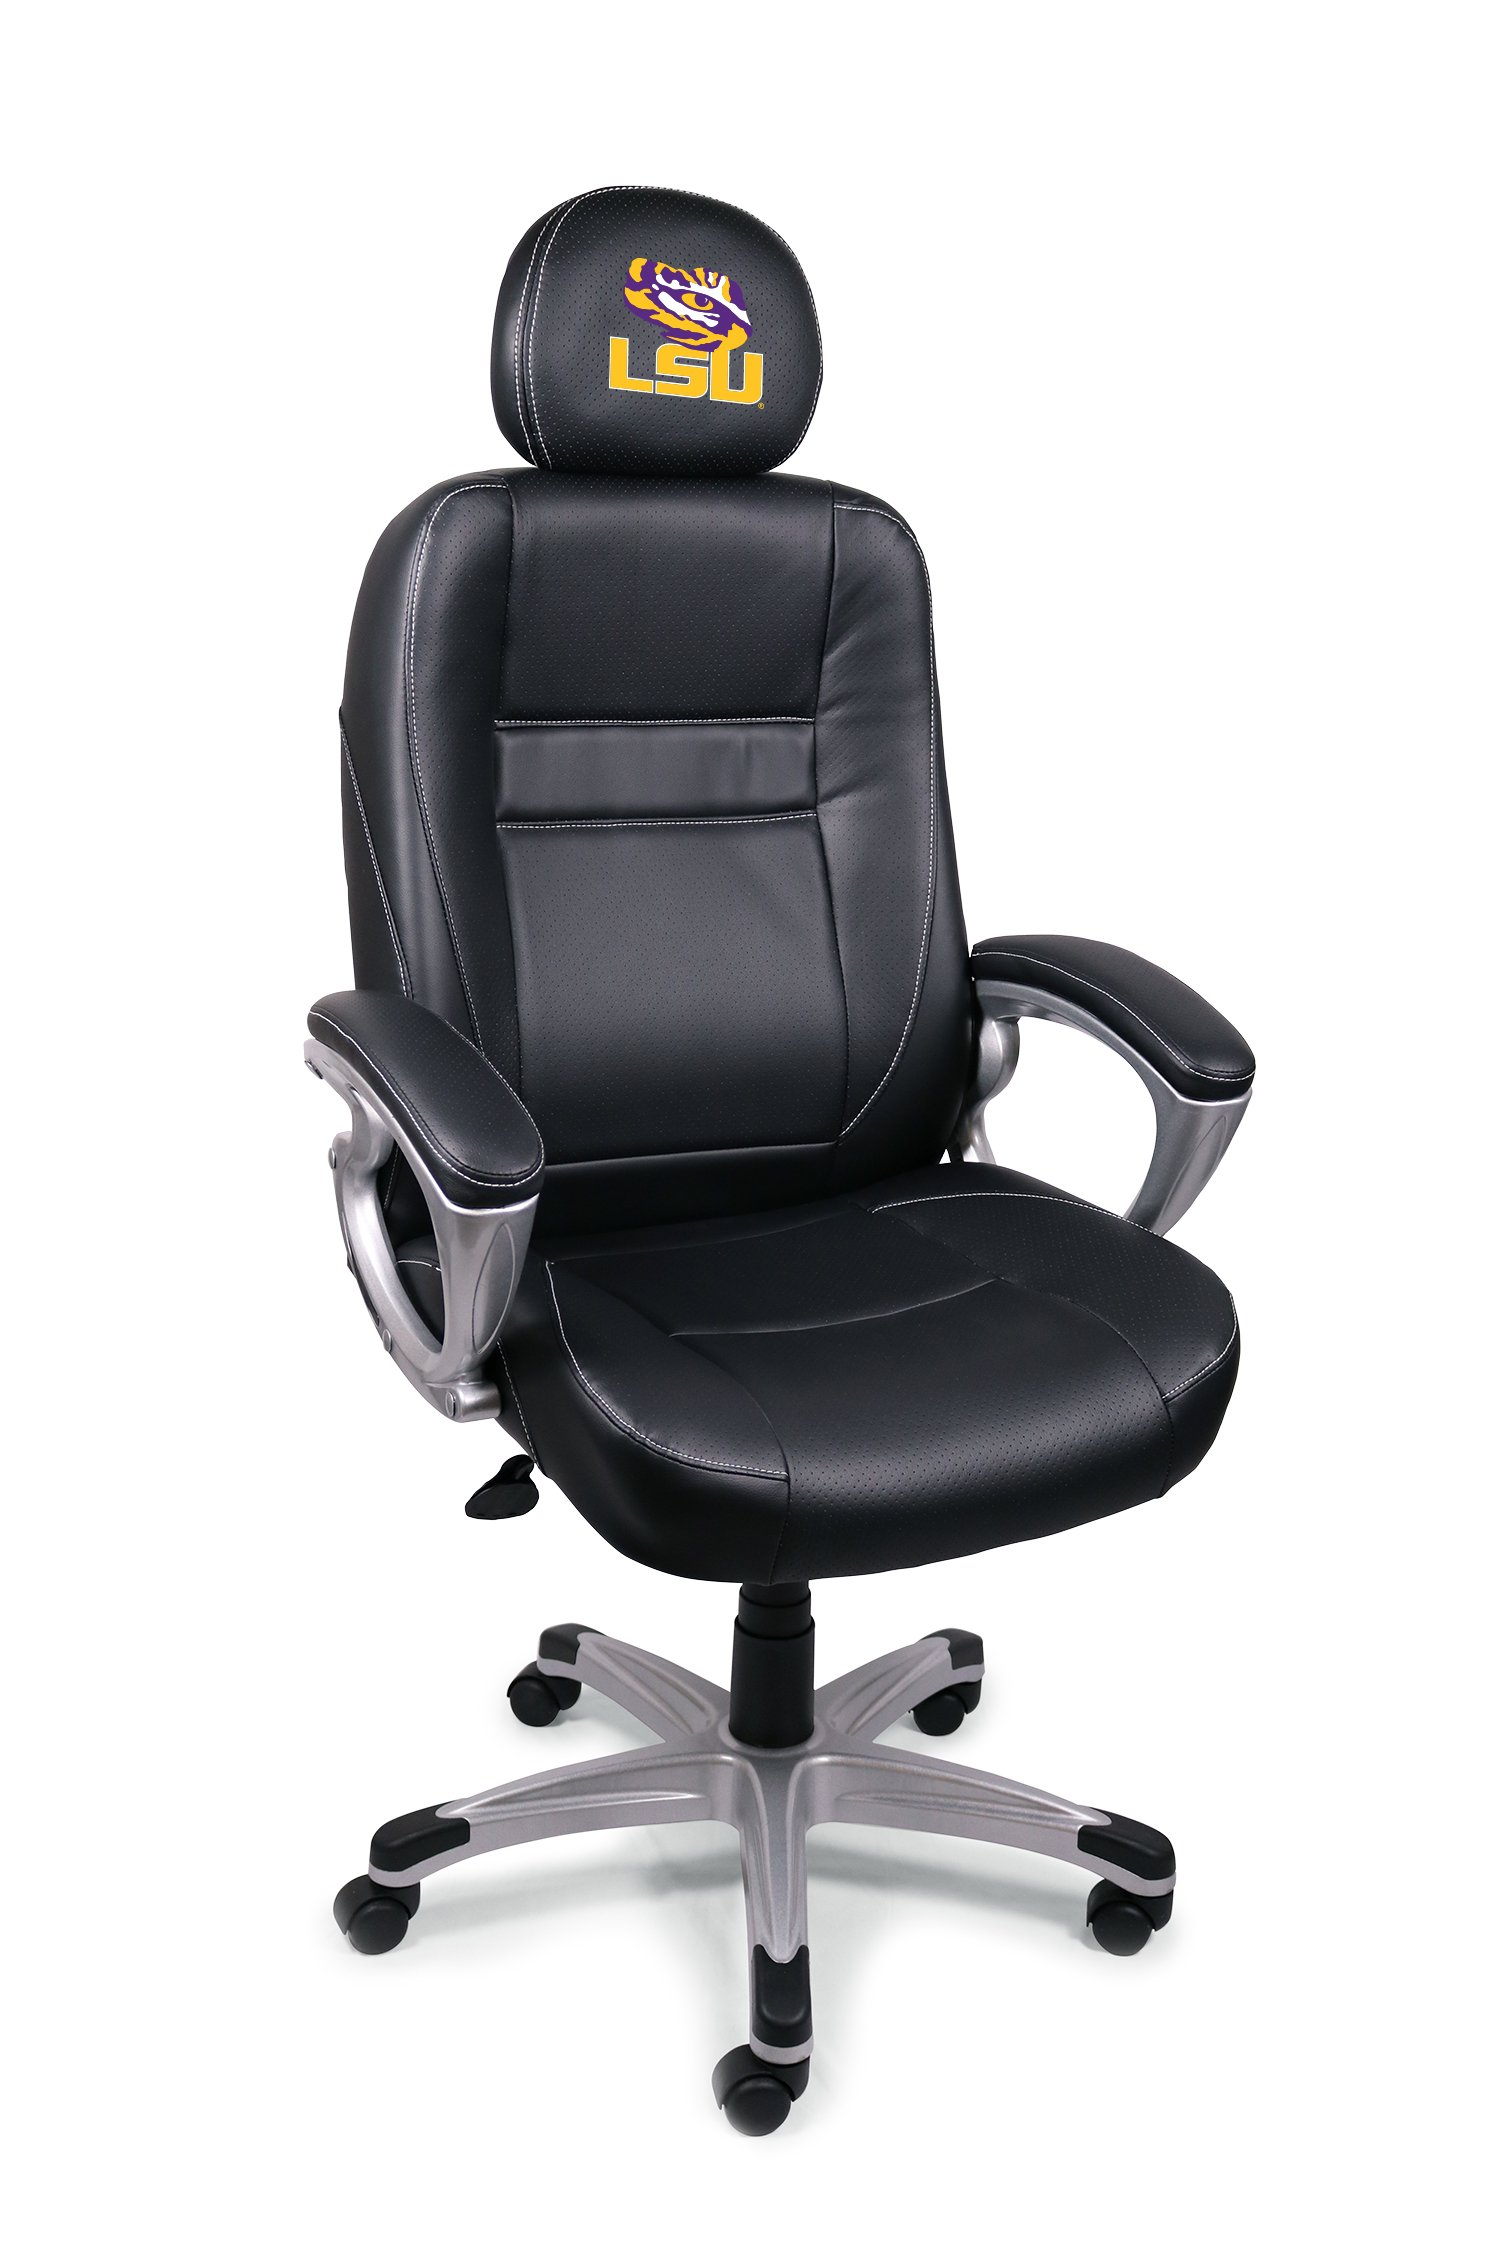 Wild Sports NCAA College LSU Tigers Leather Office Chair